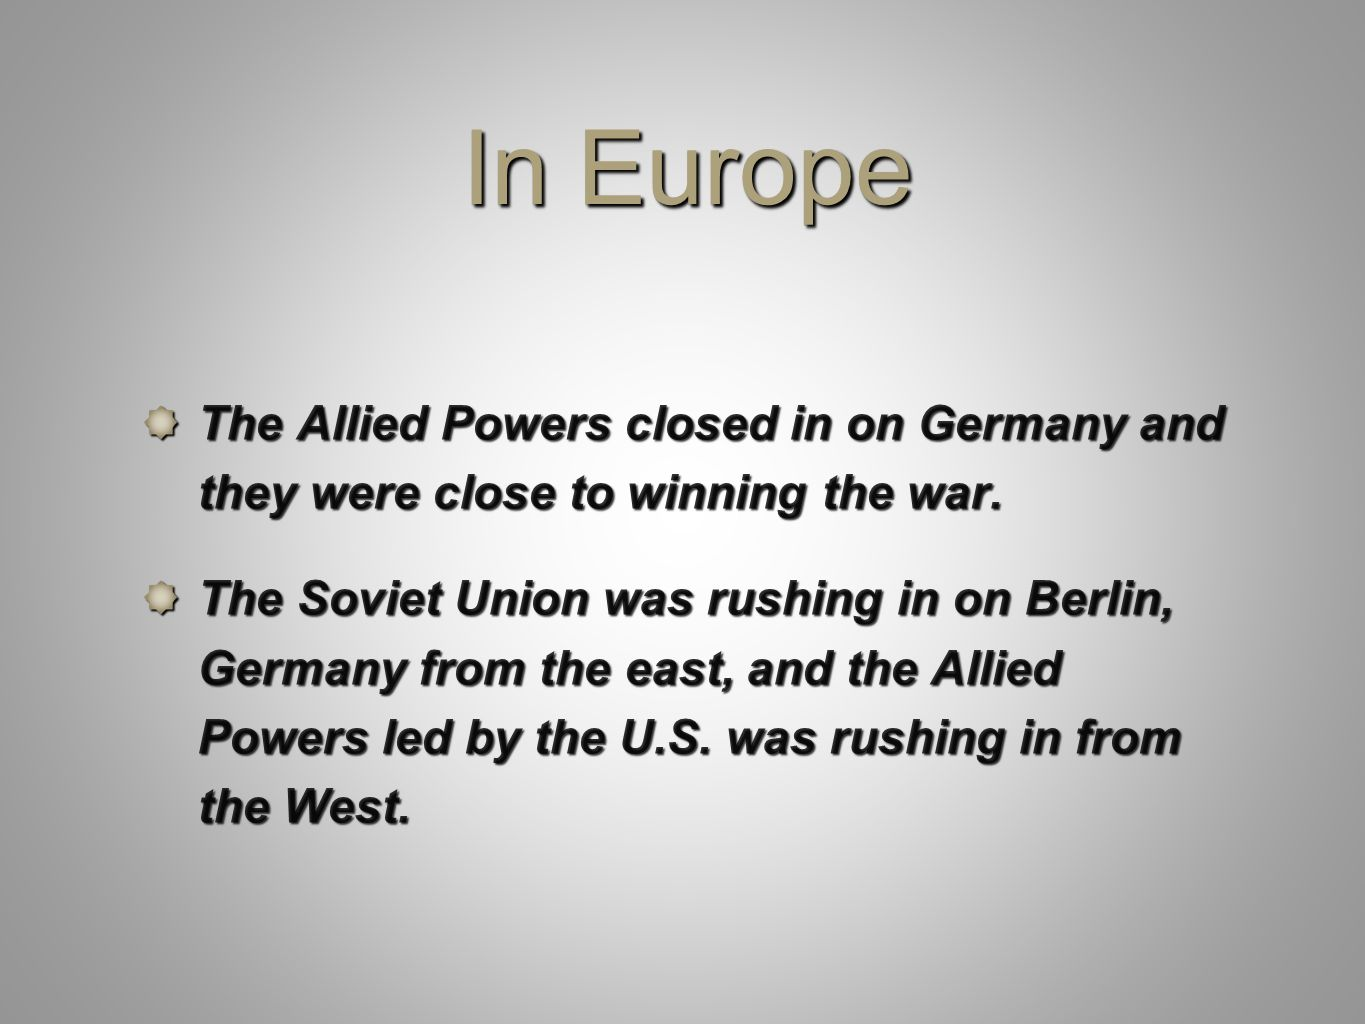 In Europe The Allied Powers closed in on Germany and they were close to winning the war.